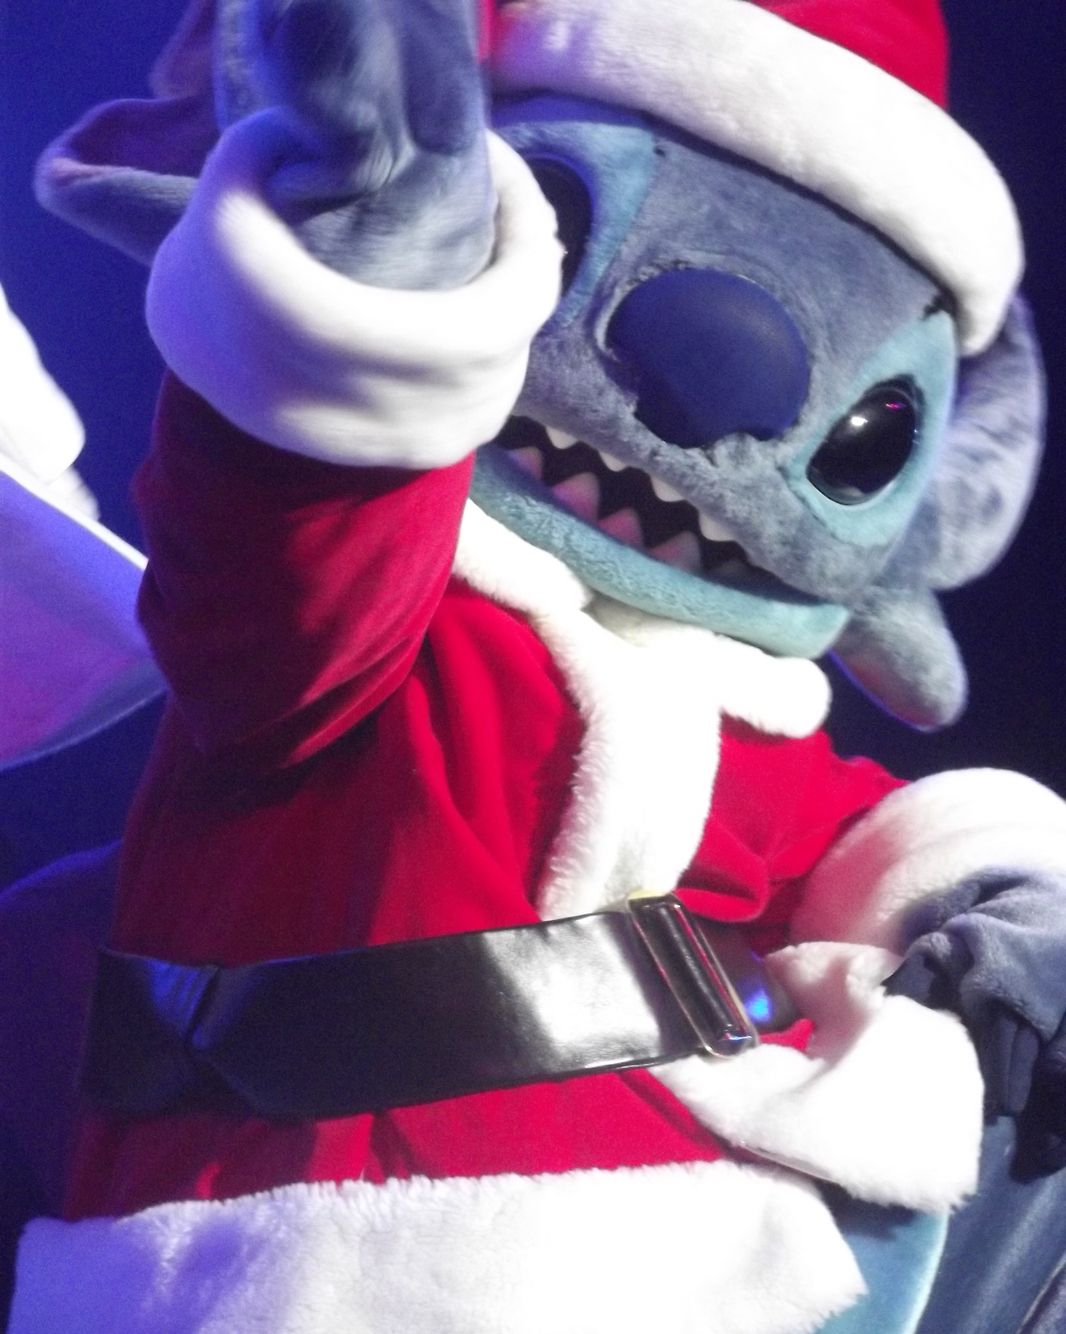 HO HO HO Stitch is coming to town!